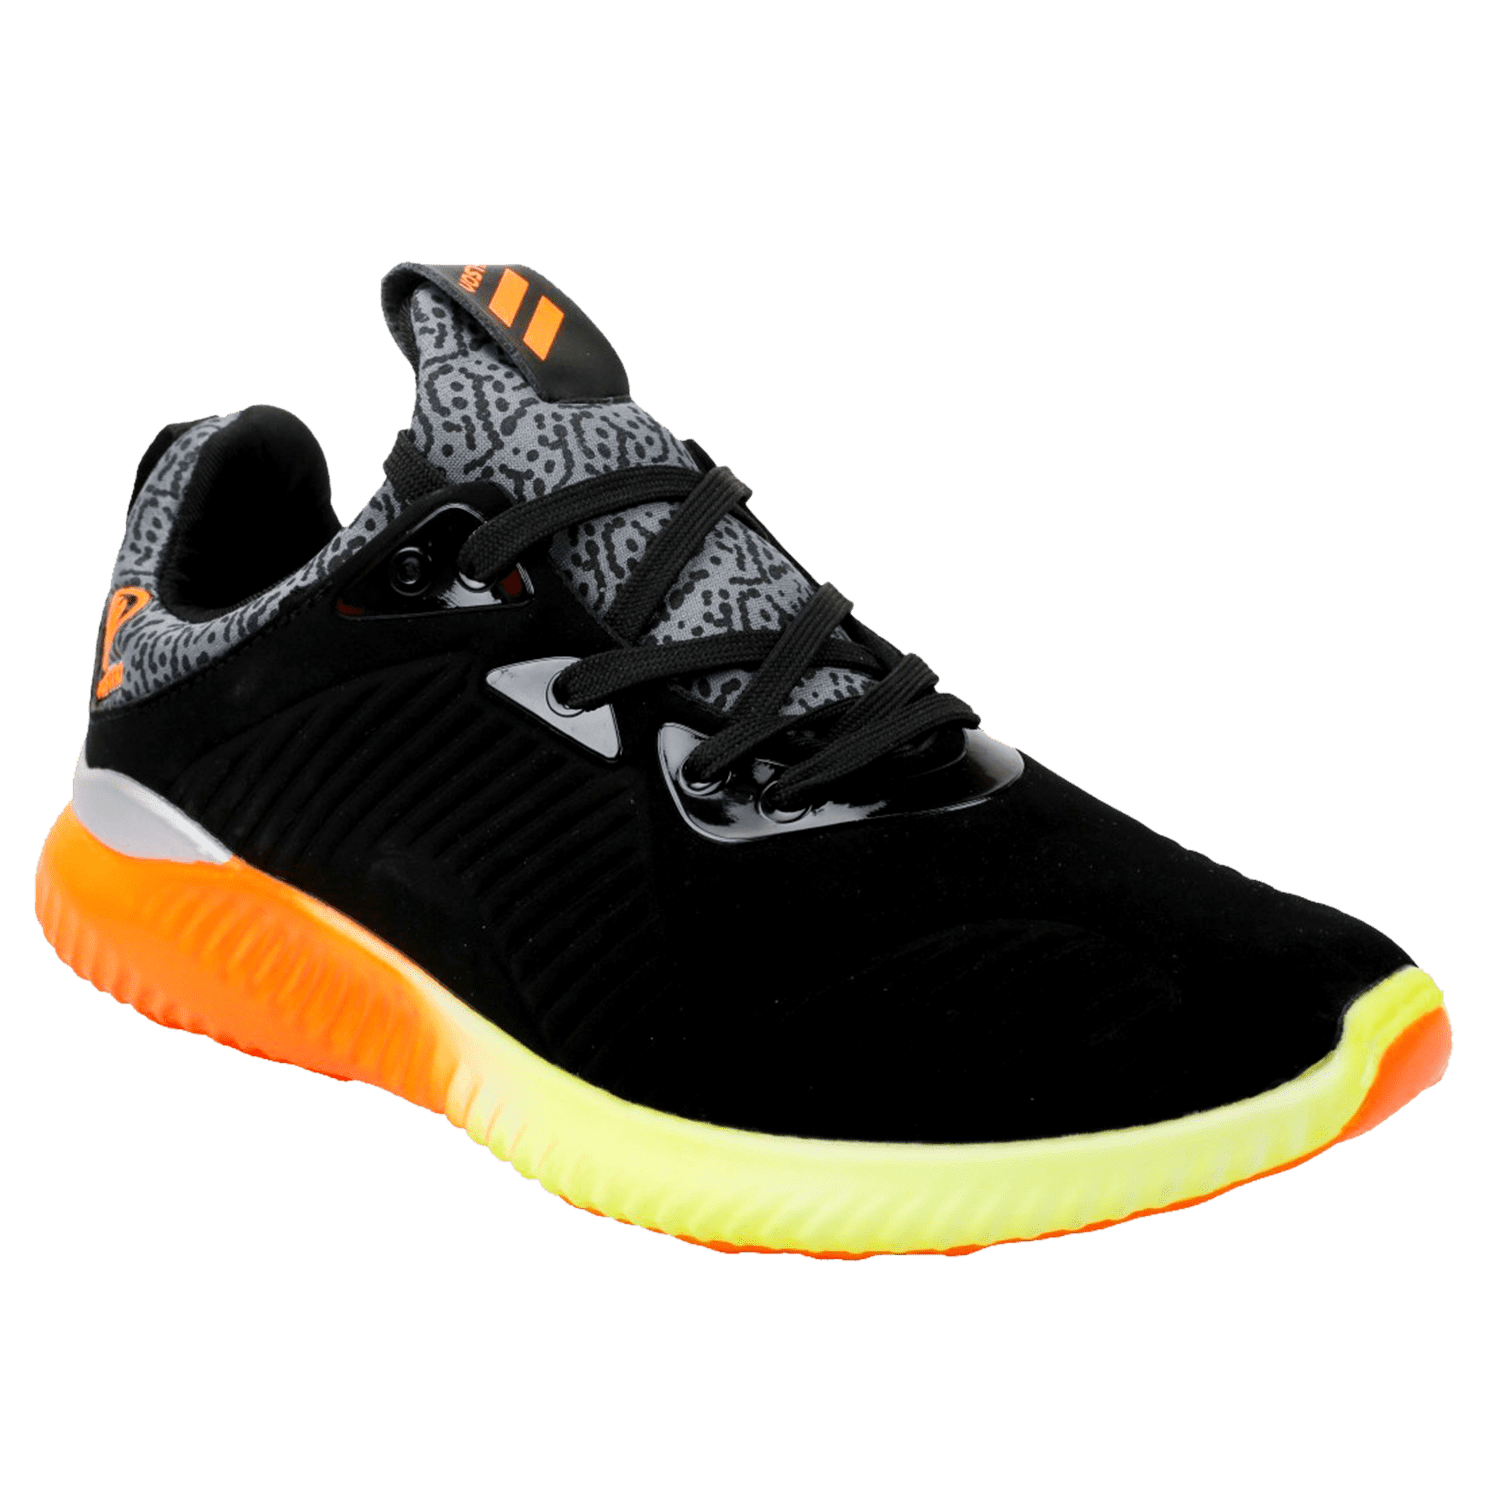 Buy Comfortable Shoes Online | Vostro Hadwin Comfortable Shoes for Men